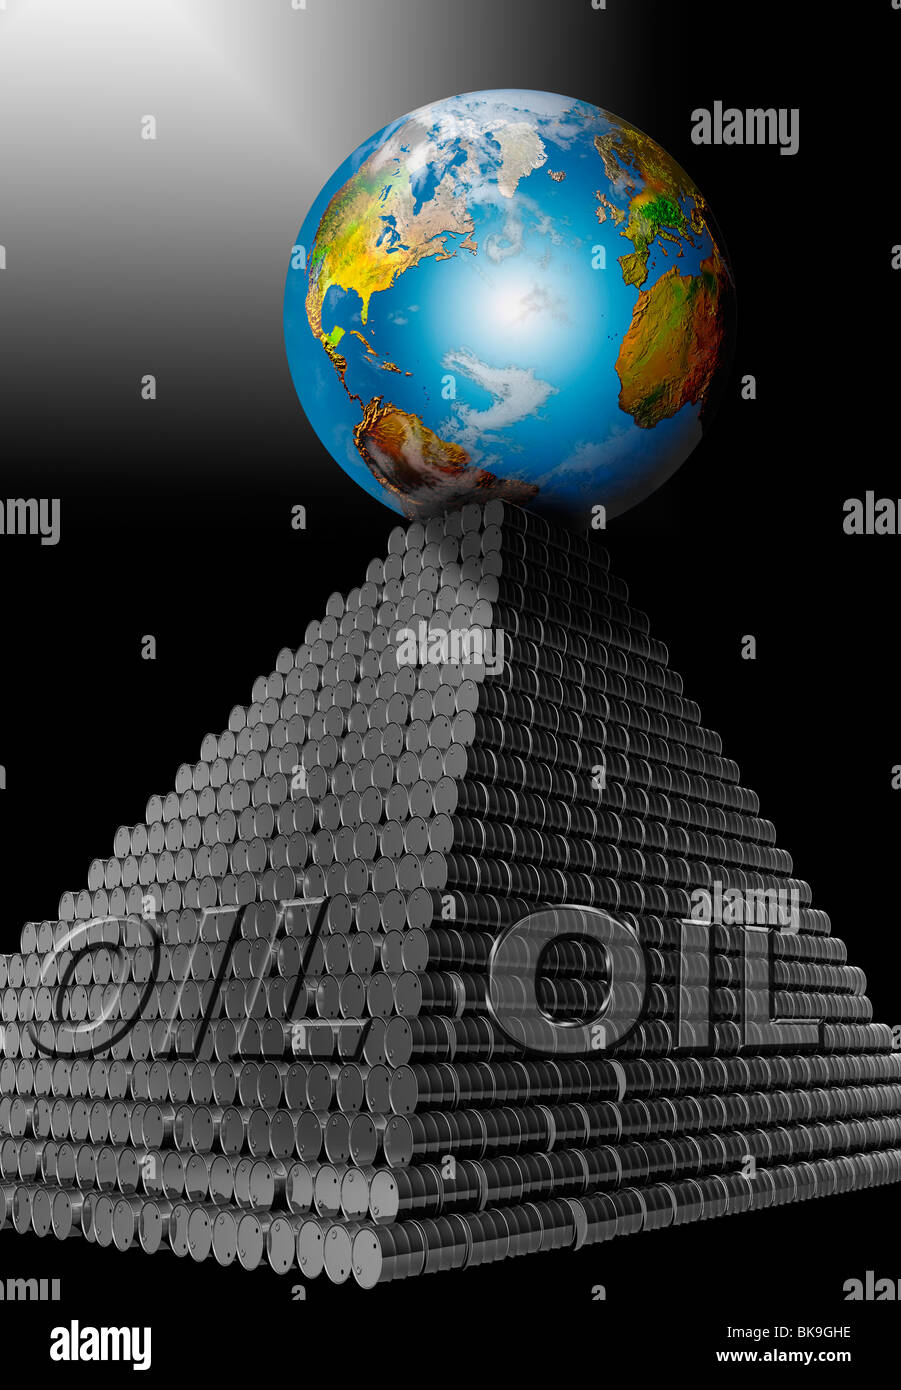 Oil Earth Barrels Pyramid by Mike Agliolo, computer graphics - Stock Image